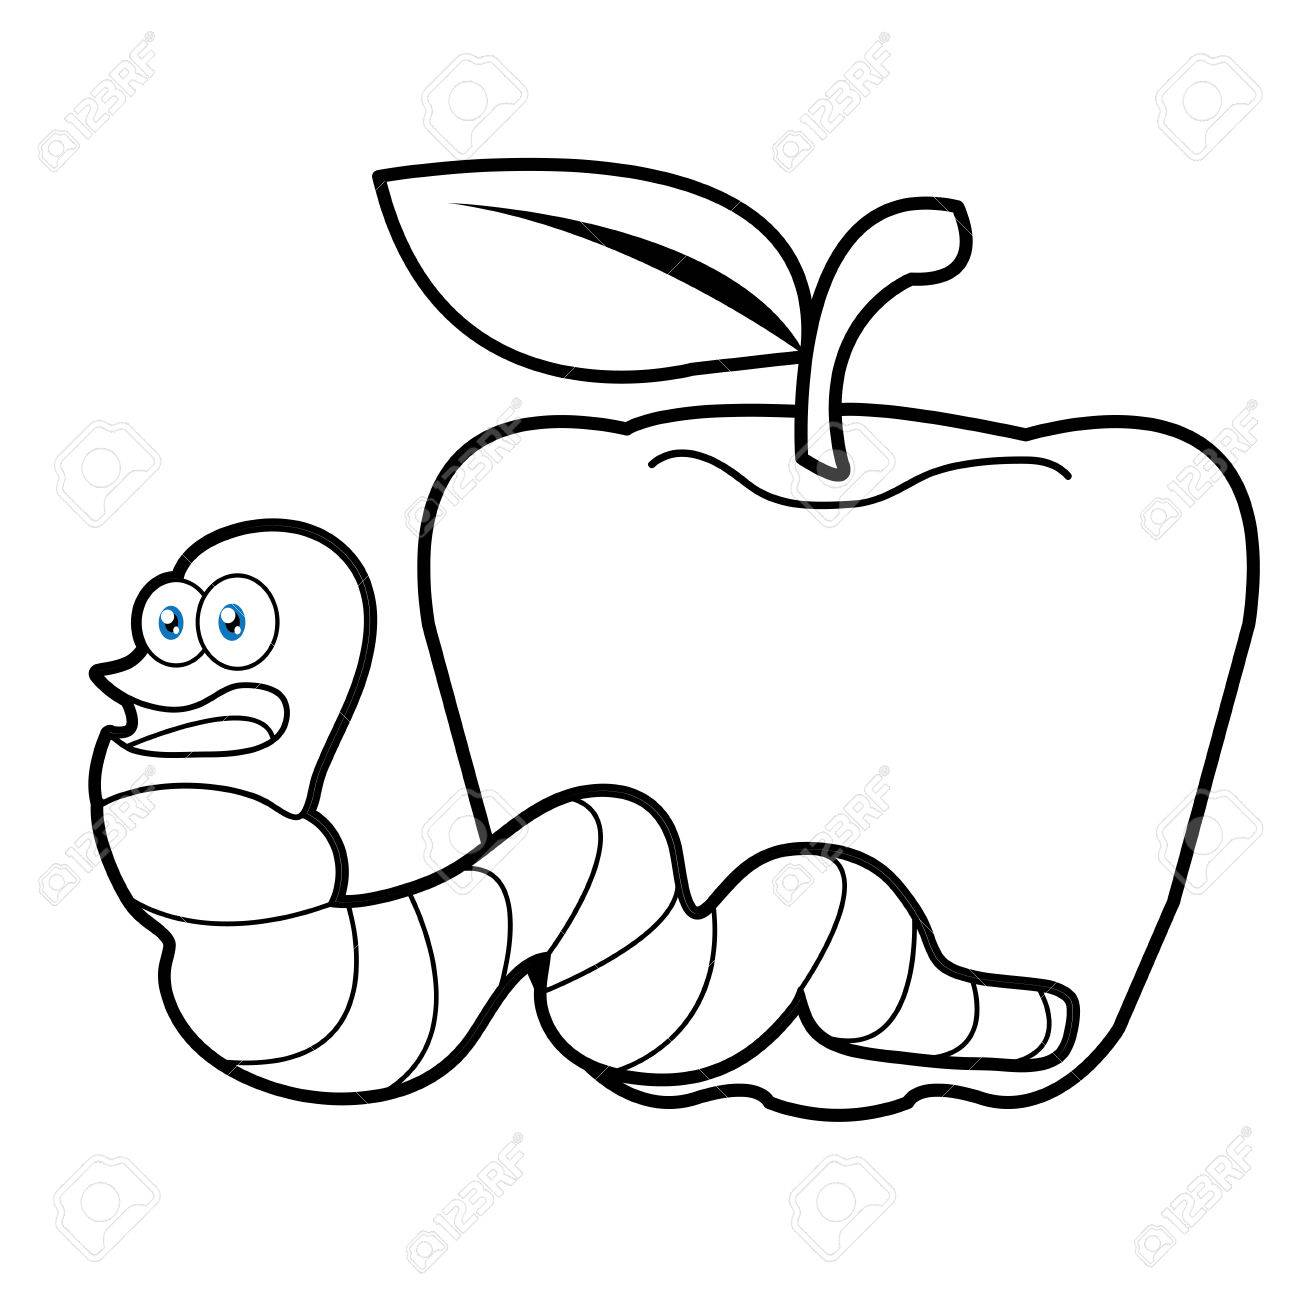 Larva Worm Cartoon Coloring Page For Toddle Royalty Free Cliparts